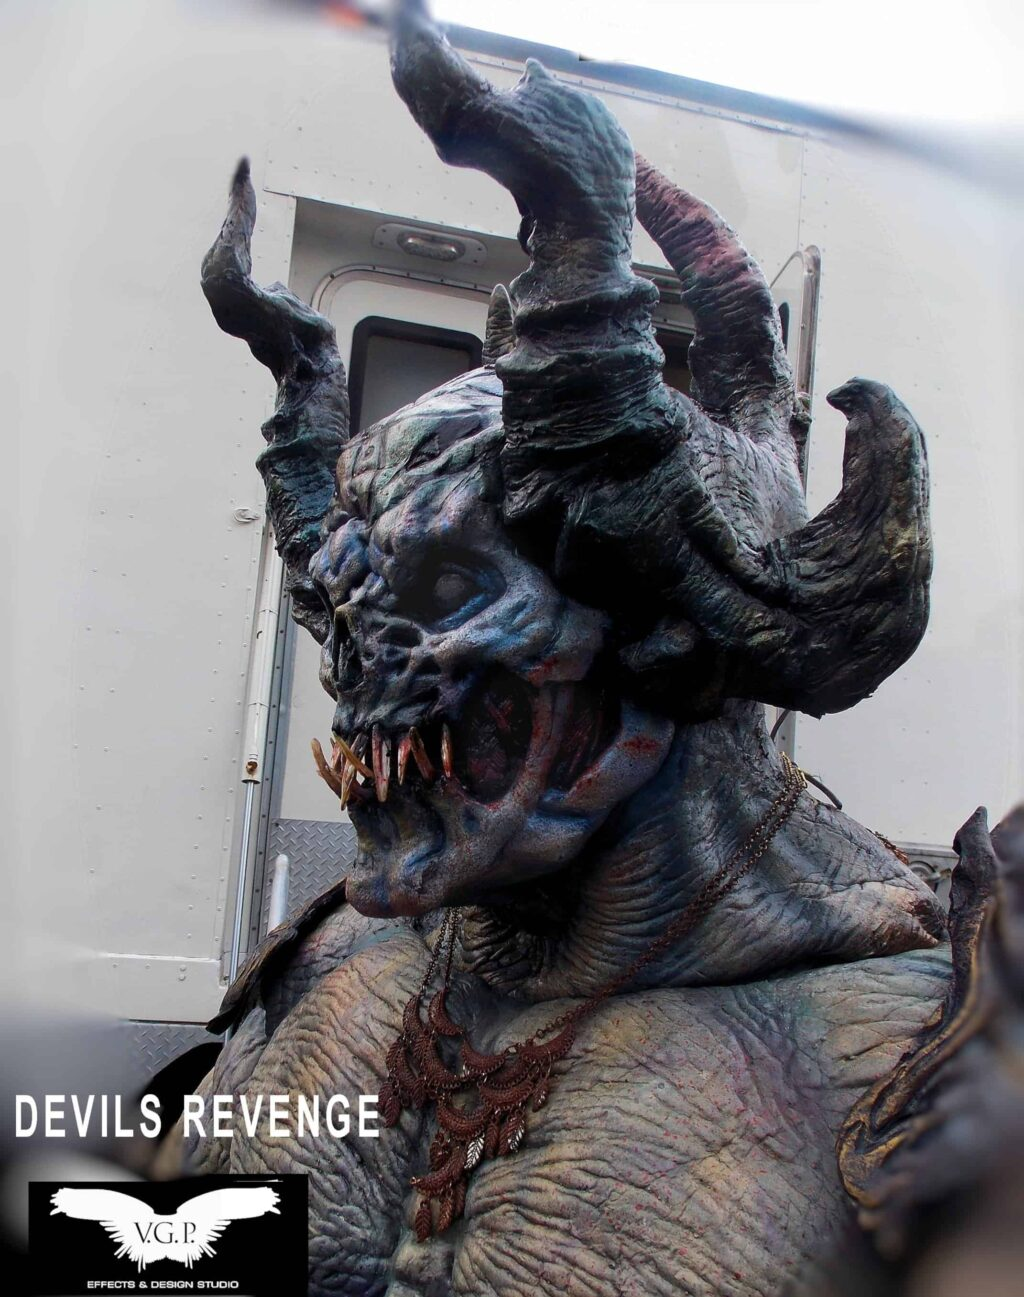 DEVIL 1 1024x1297 - Vincent Guastini: From Making Monsters to Directing & Producing + Image Gallery